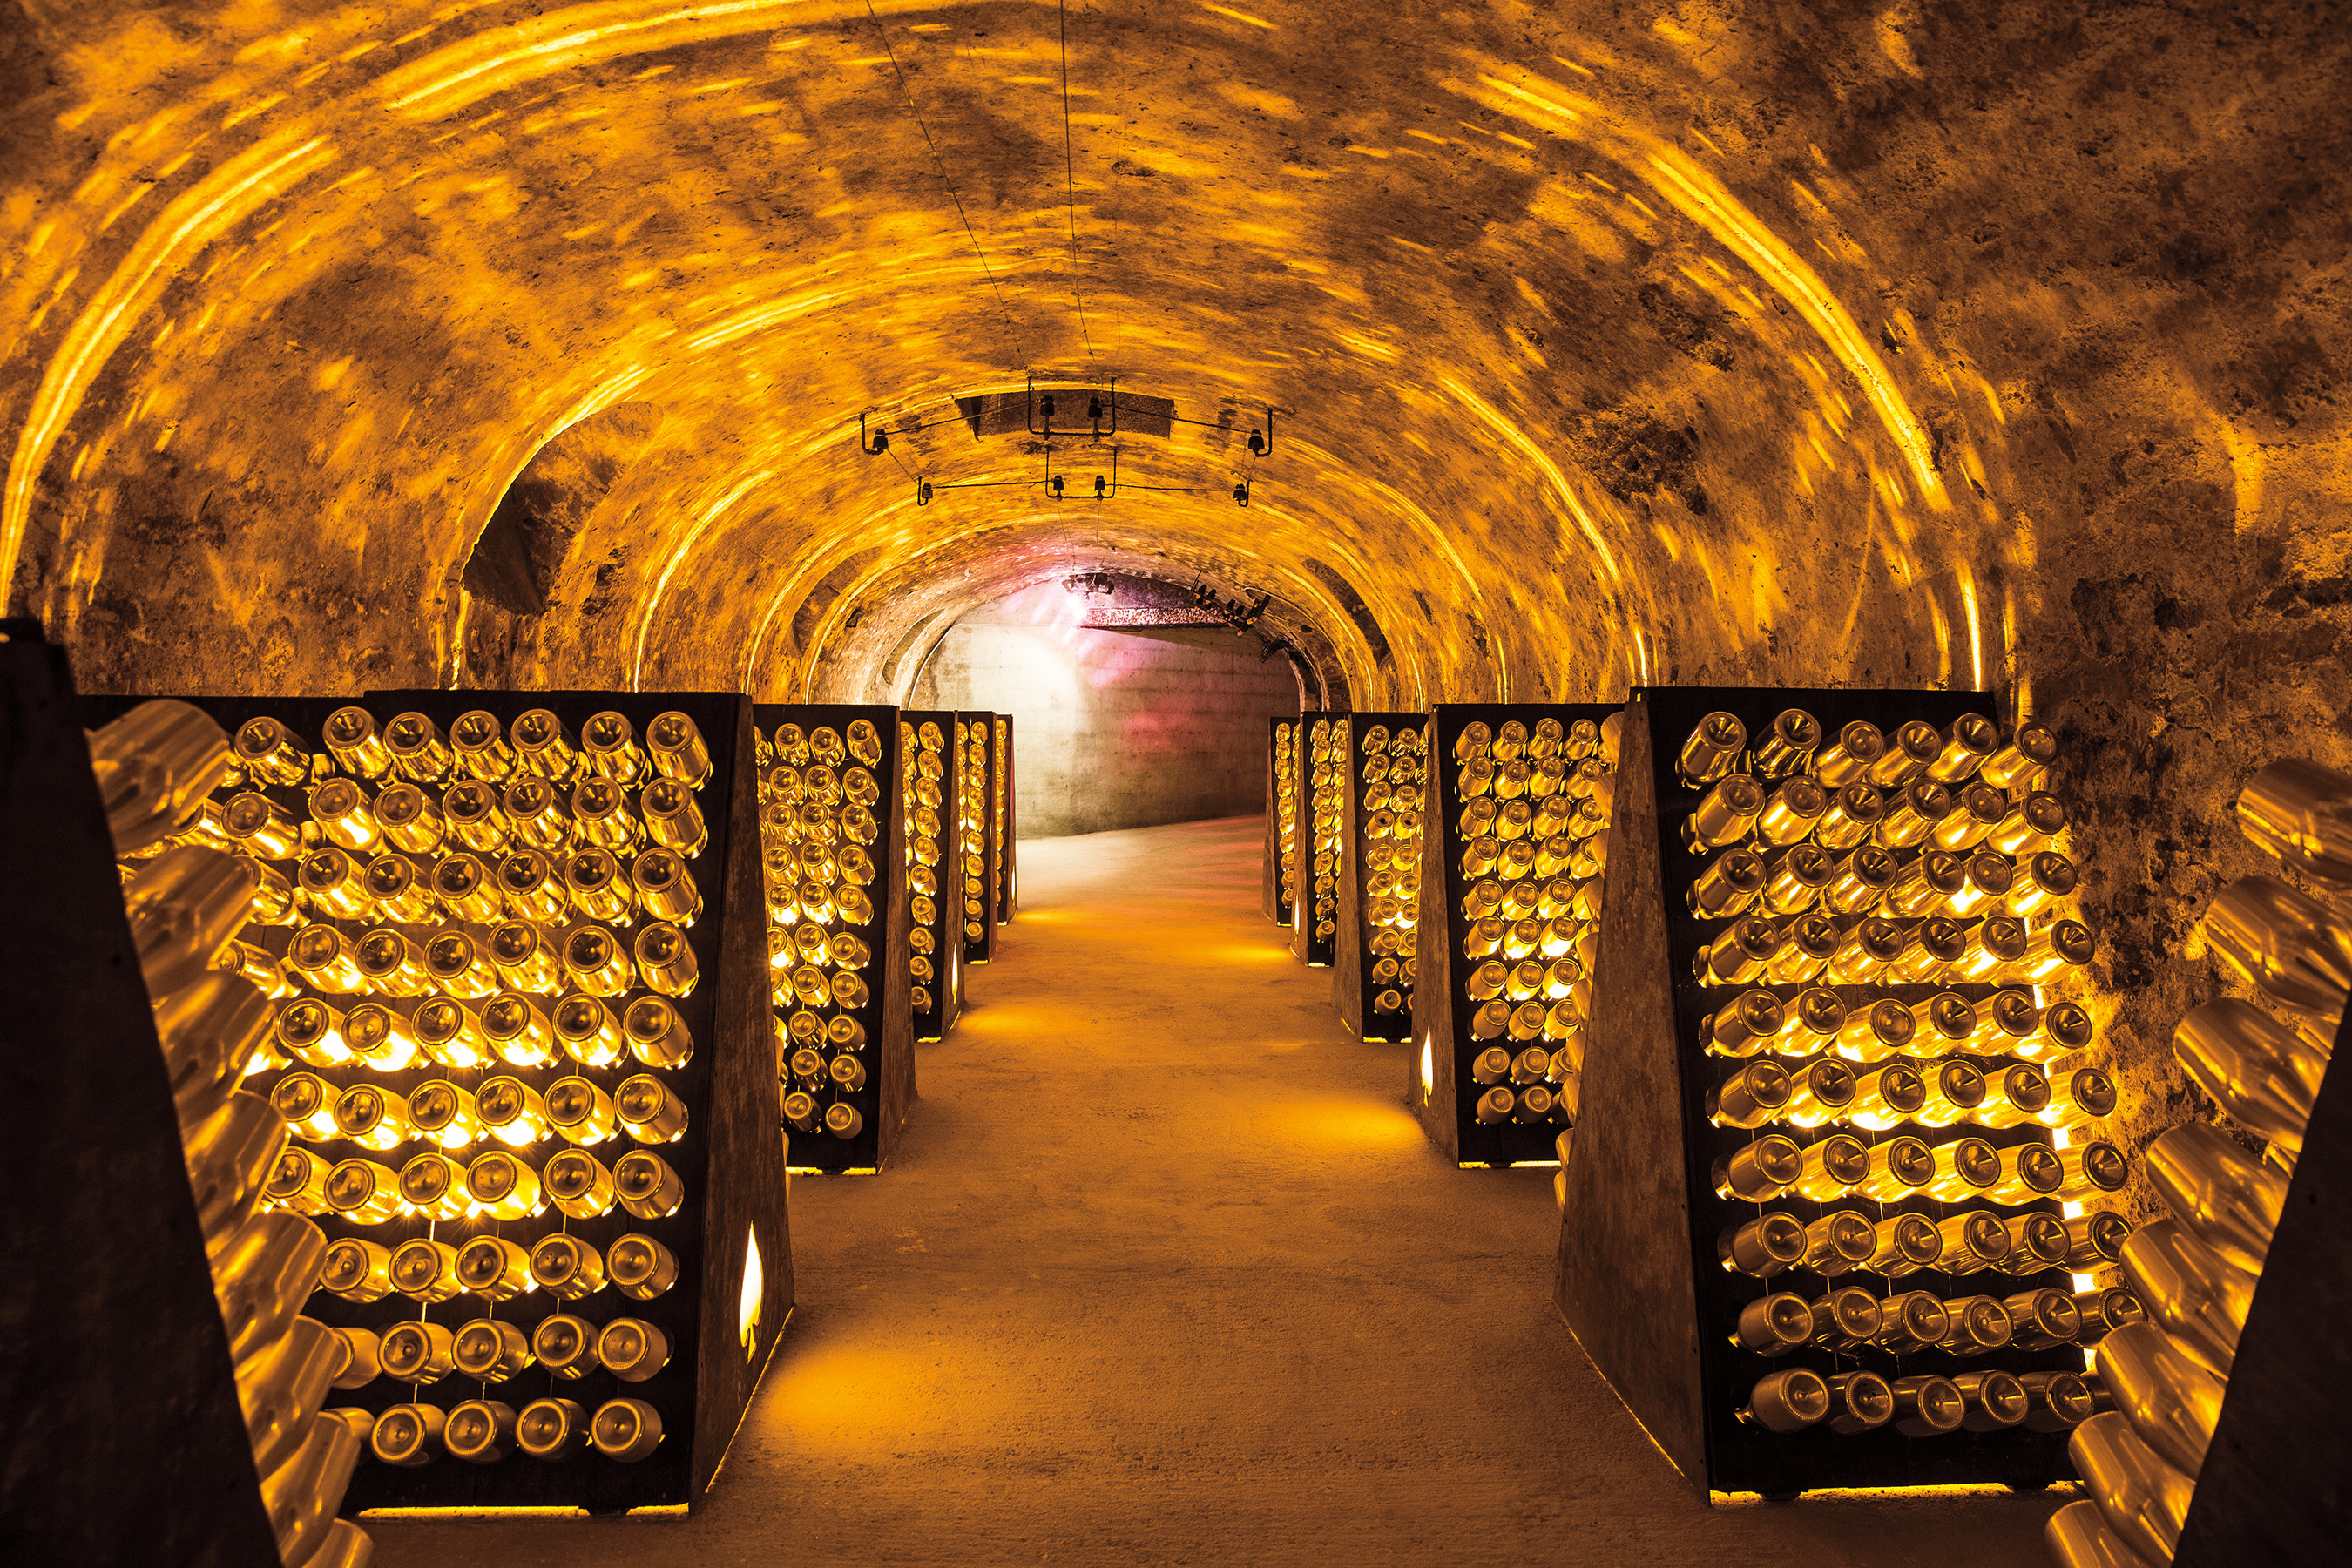 Travel to Champagne with Armand de Brignac – tend the vineyards, sample the reserves, stroll the private cellars, and finishing your own cuvée.